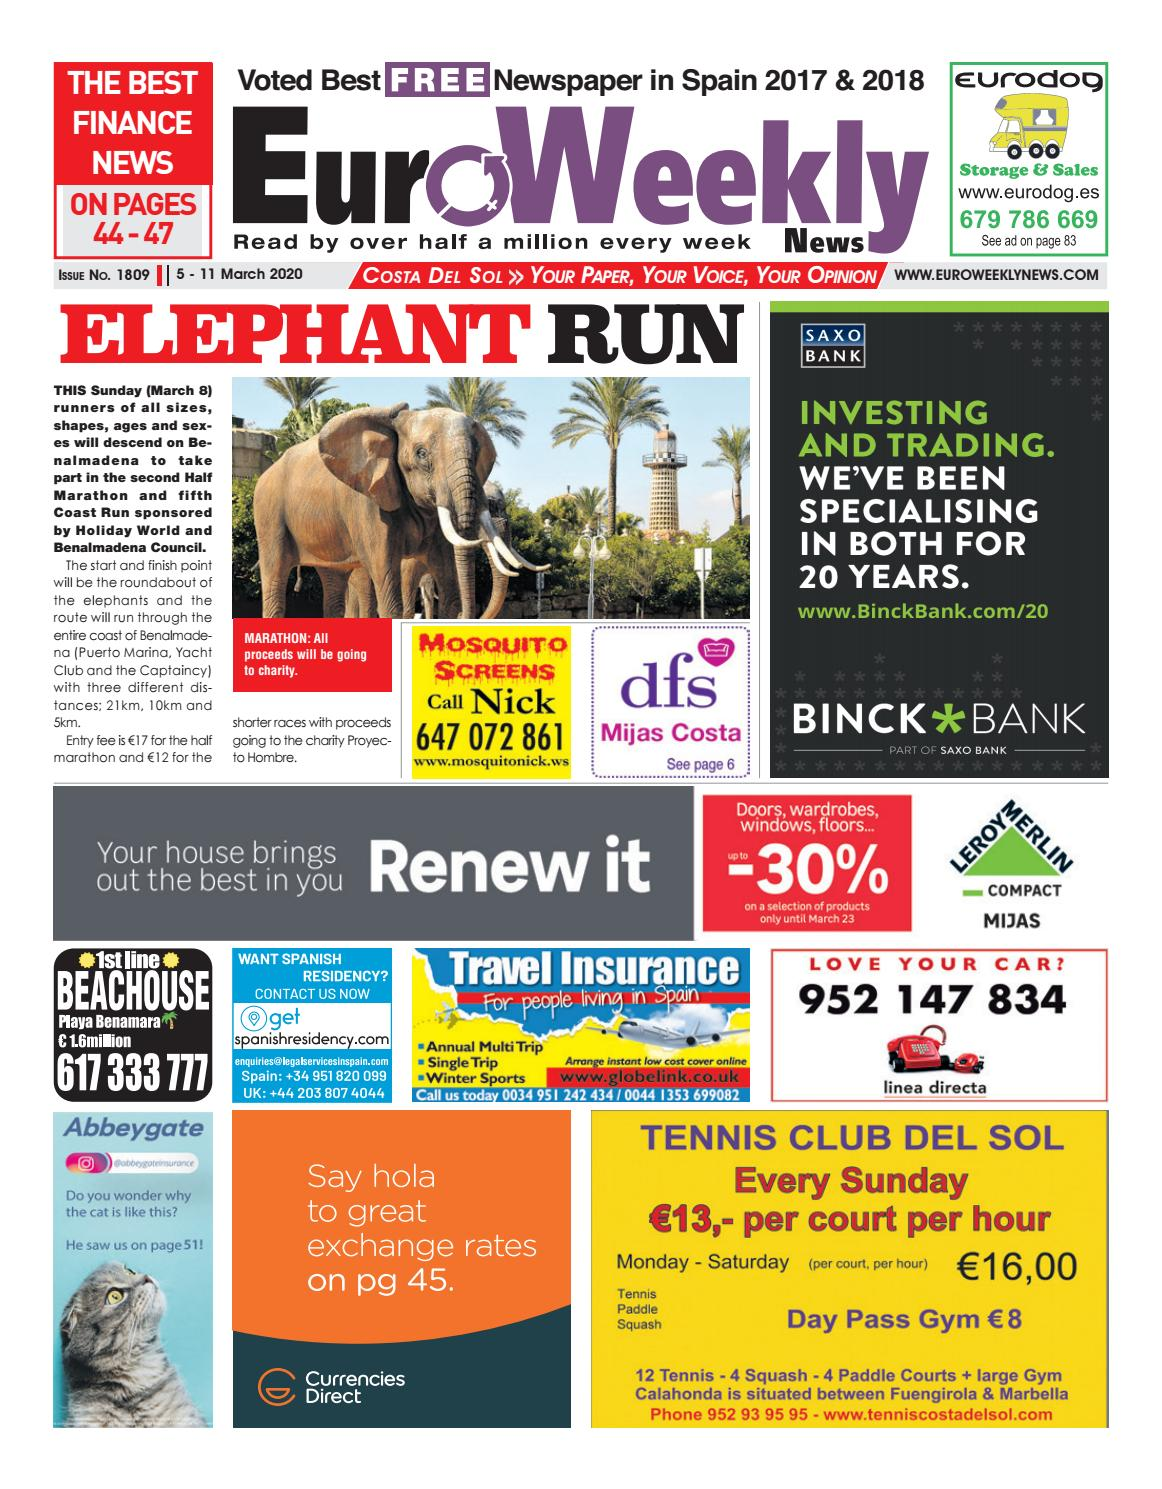 Euro Weekly News - Costa del Sol 5 - 11 March 2020 Issue 1809 by ...